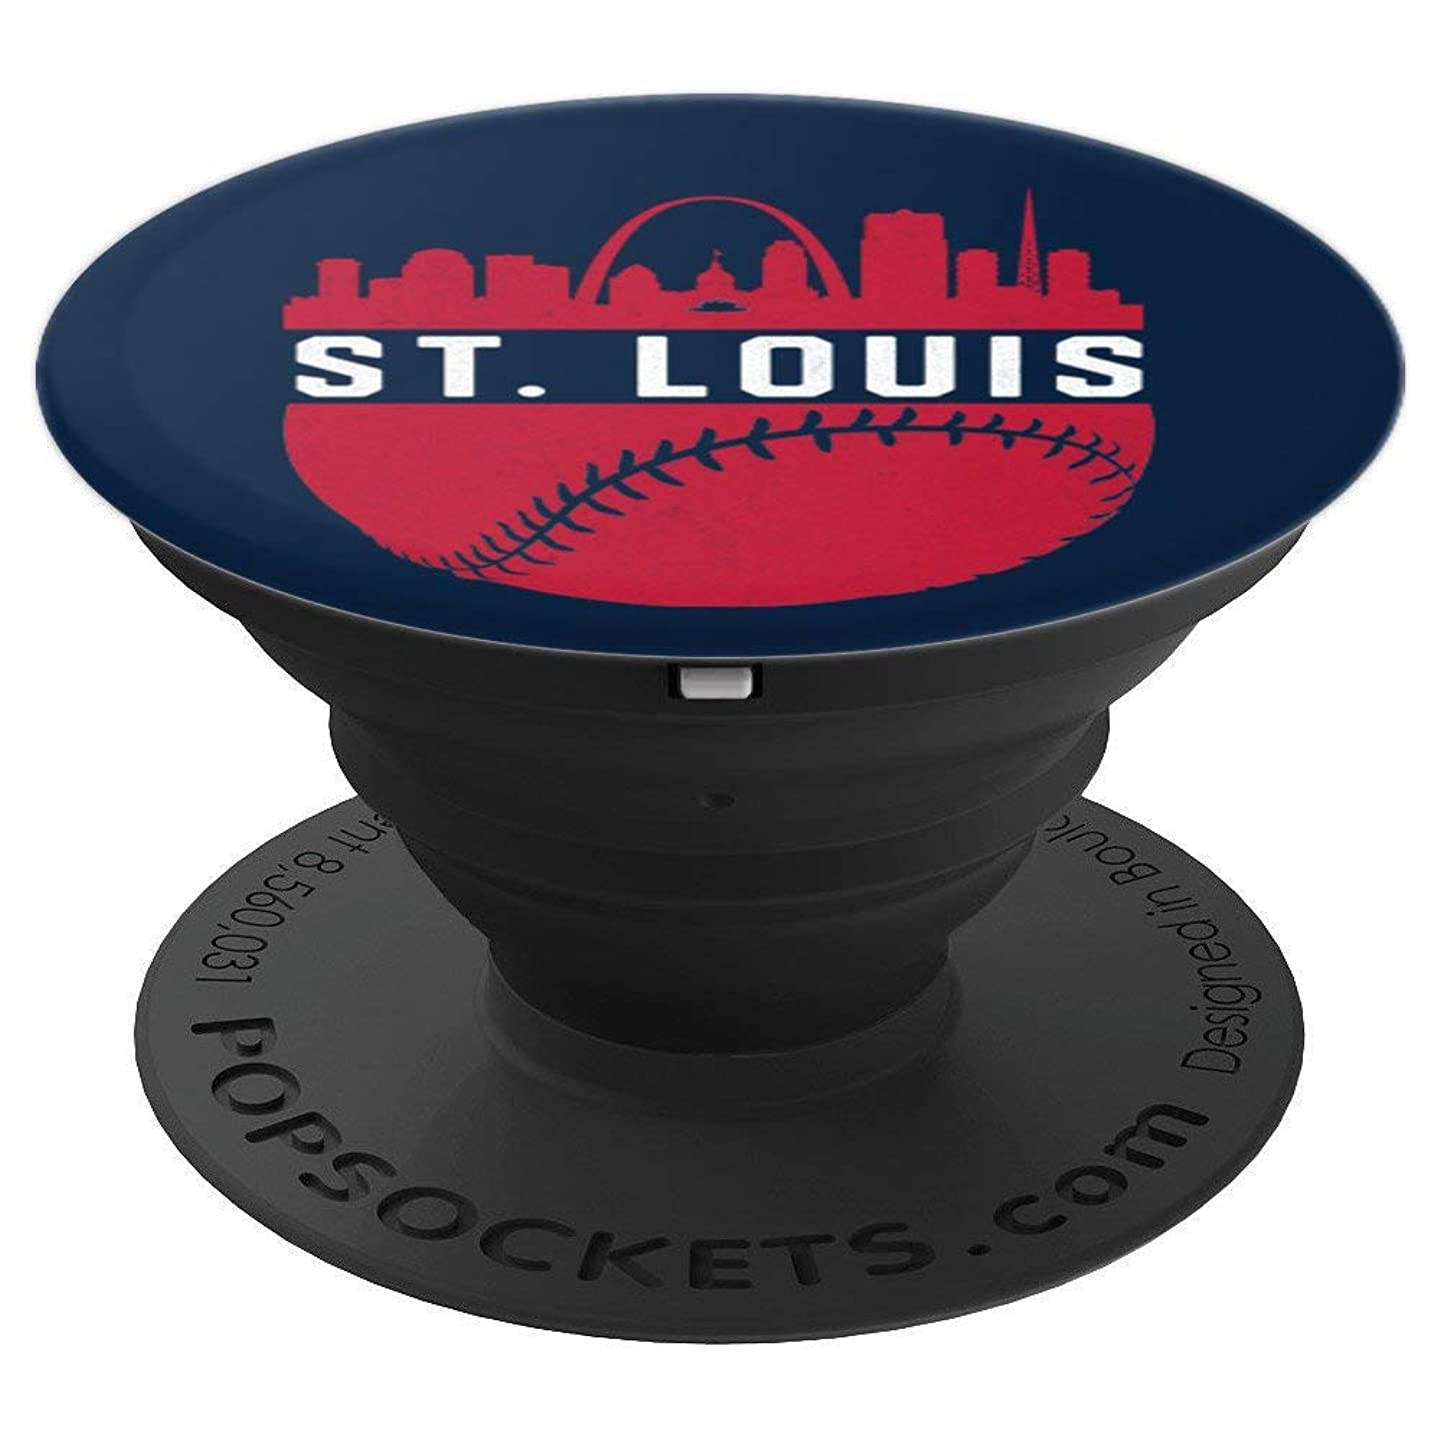 Vintage St. Louis Missouri Skyline Baseball - PopSockets Grip and Stand for Phones and Tablets